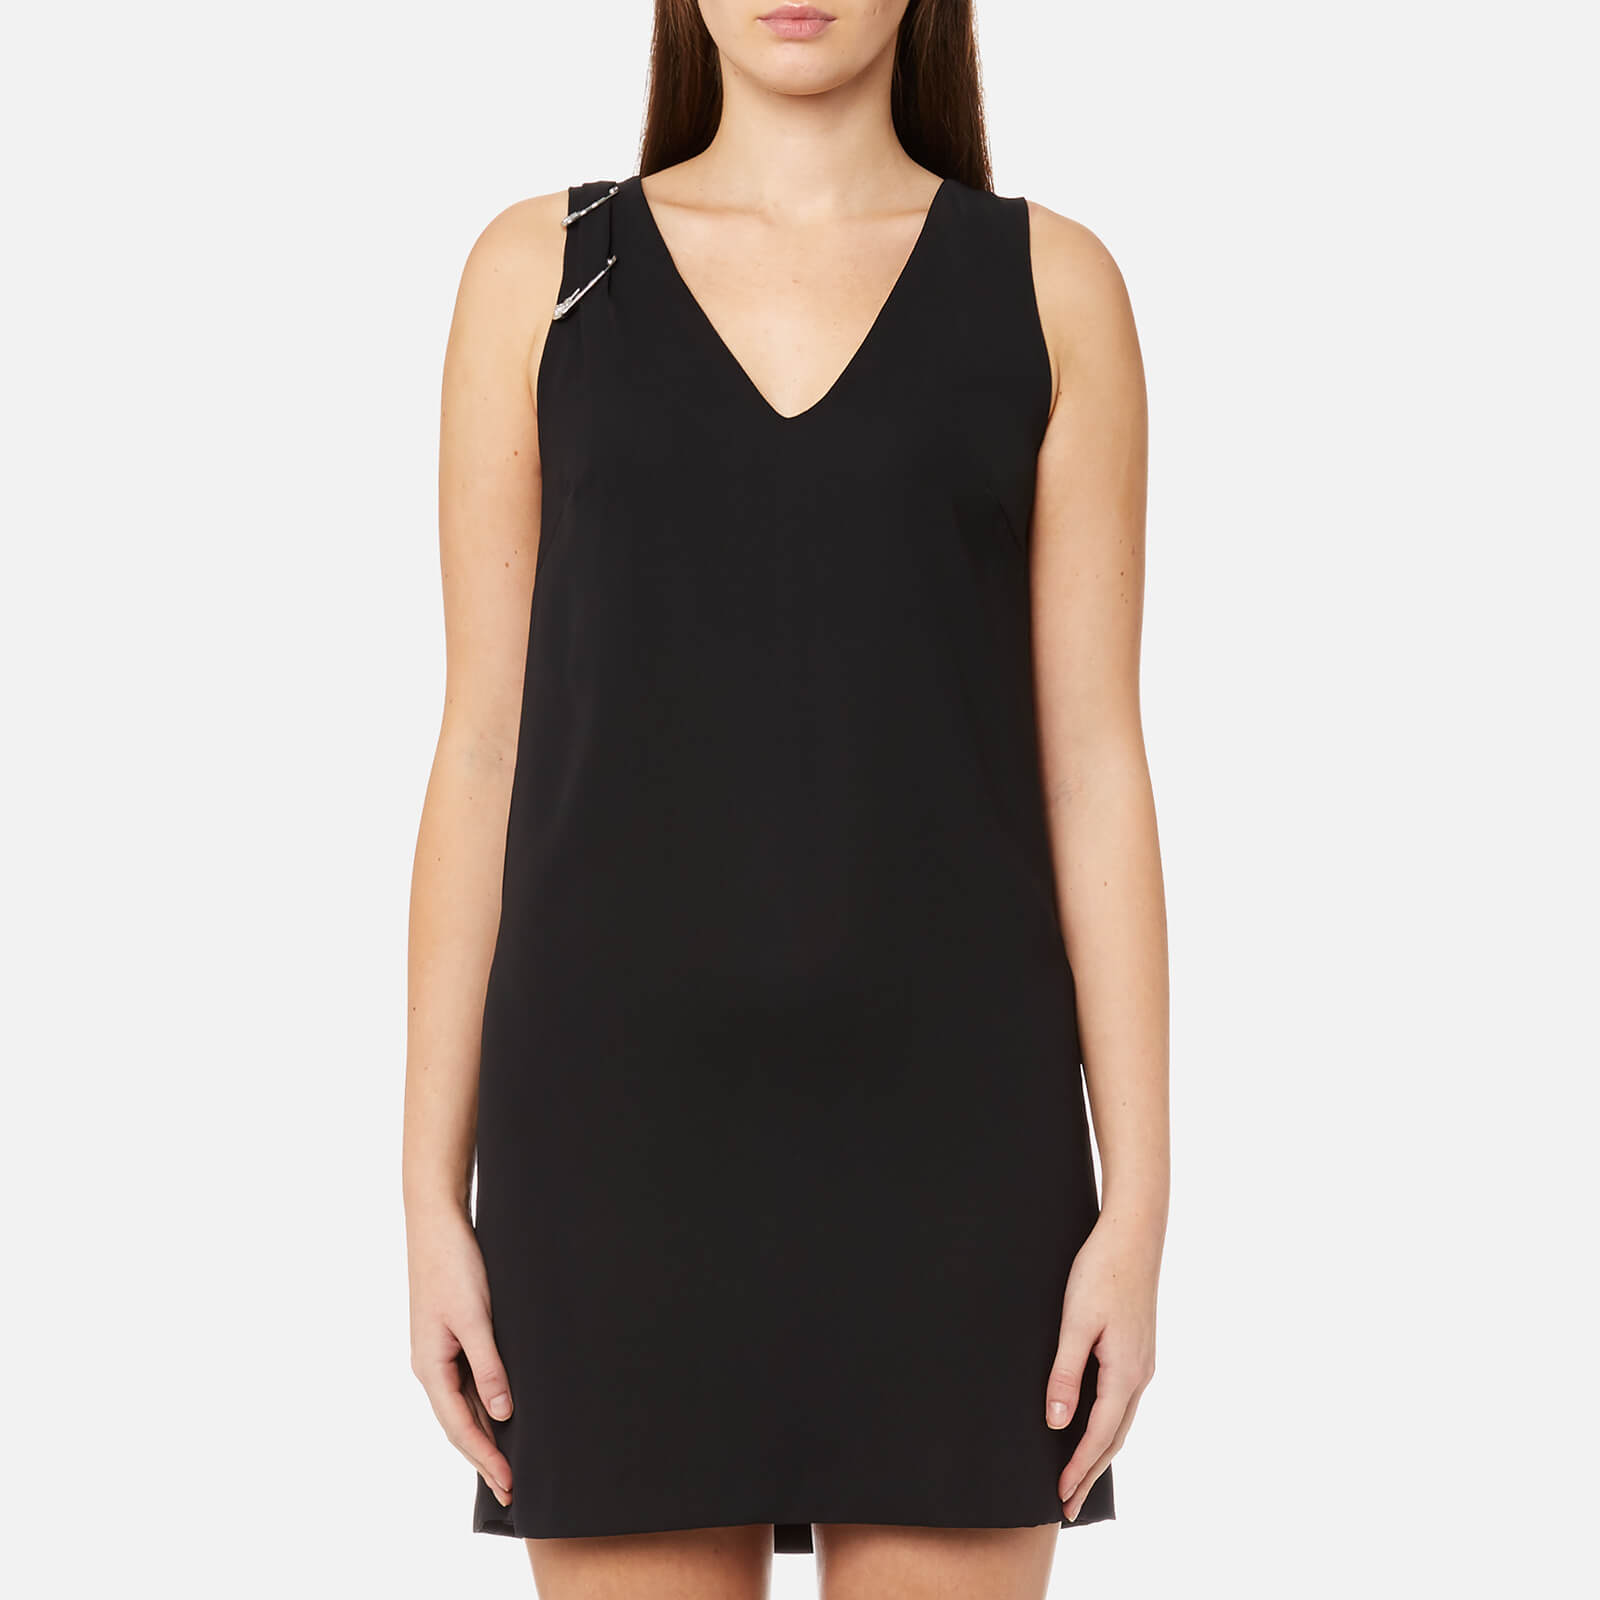 a6d76c1d80f Versus Versace Women s V Neck Shift Dress with Safty Pin Detail - Black -  Free UK Delivery over £50